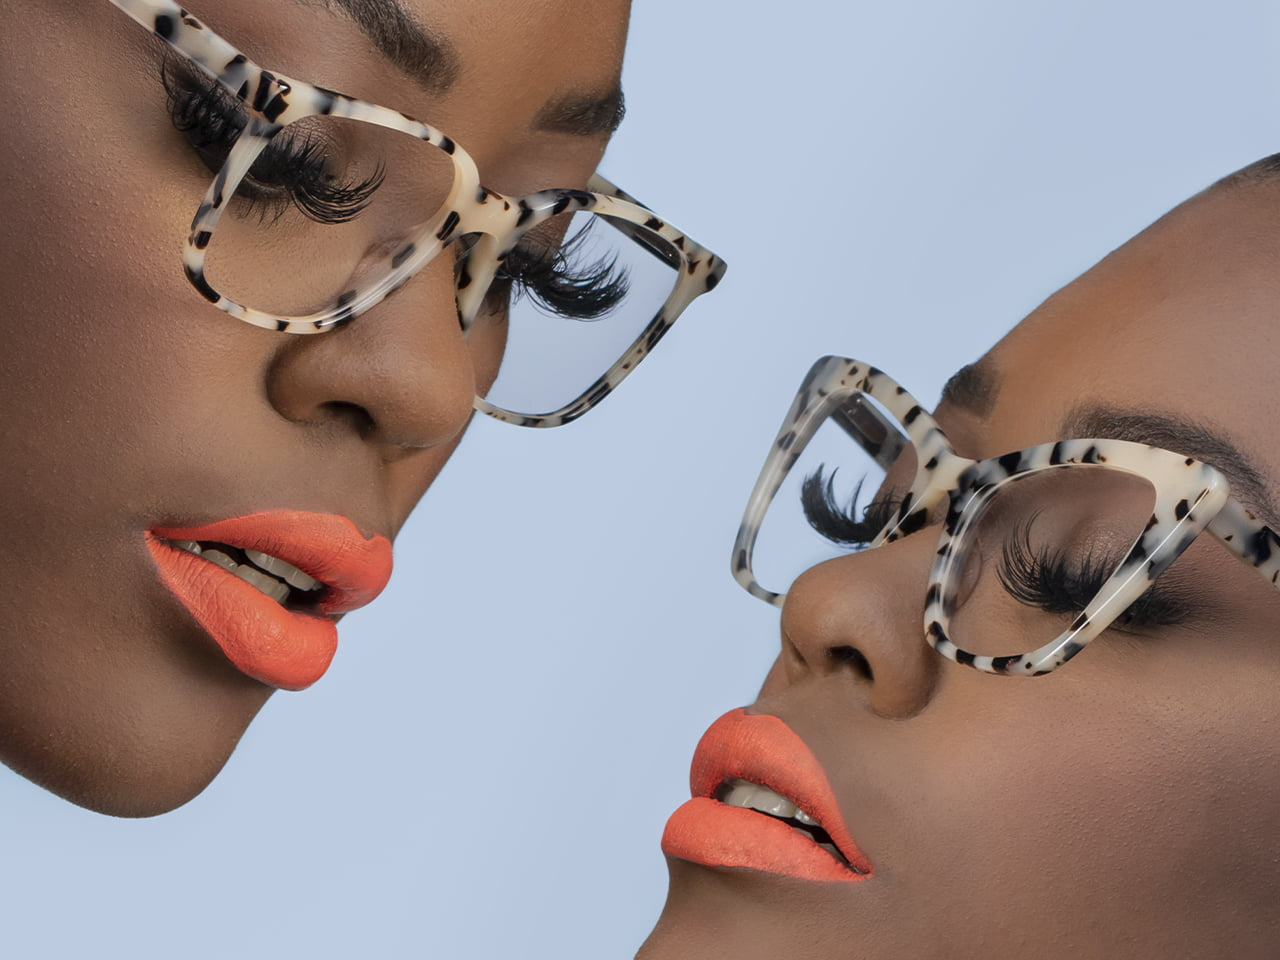 Disruptive Eyewear Brand Solving World Vision Poverty With 21,467 Pairs of Glasses Donated (And Counting)